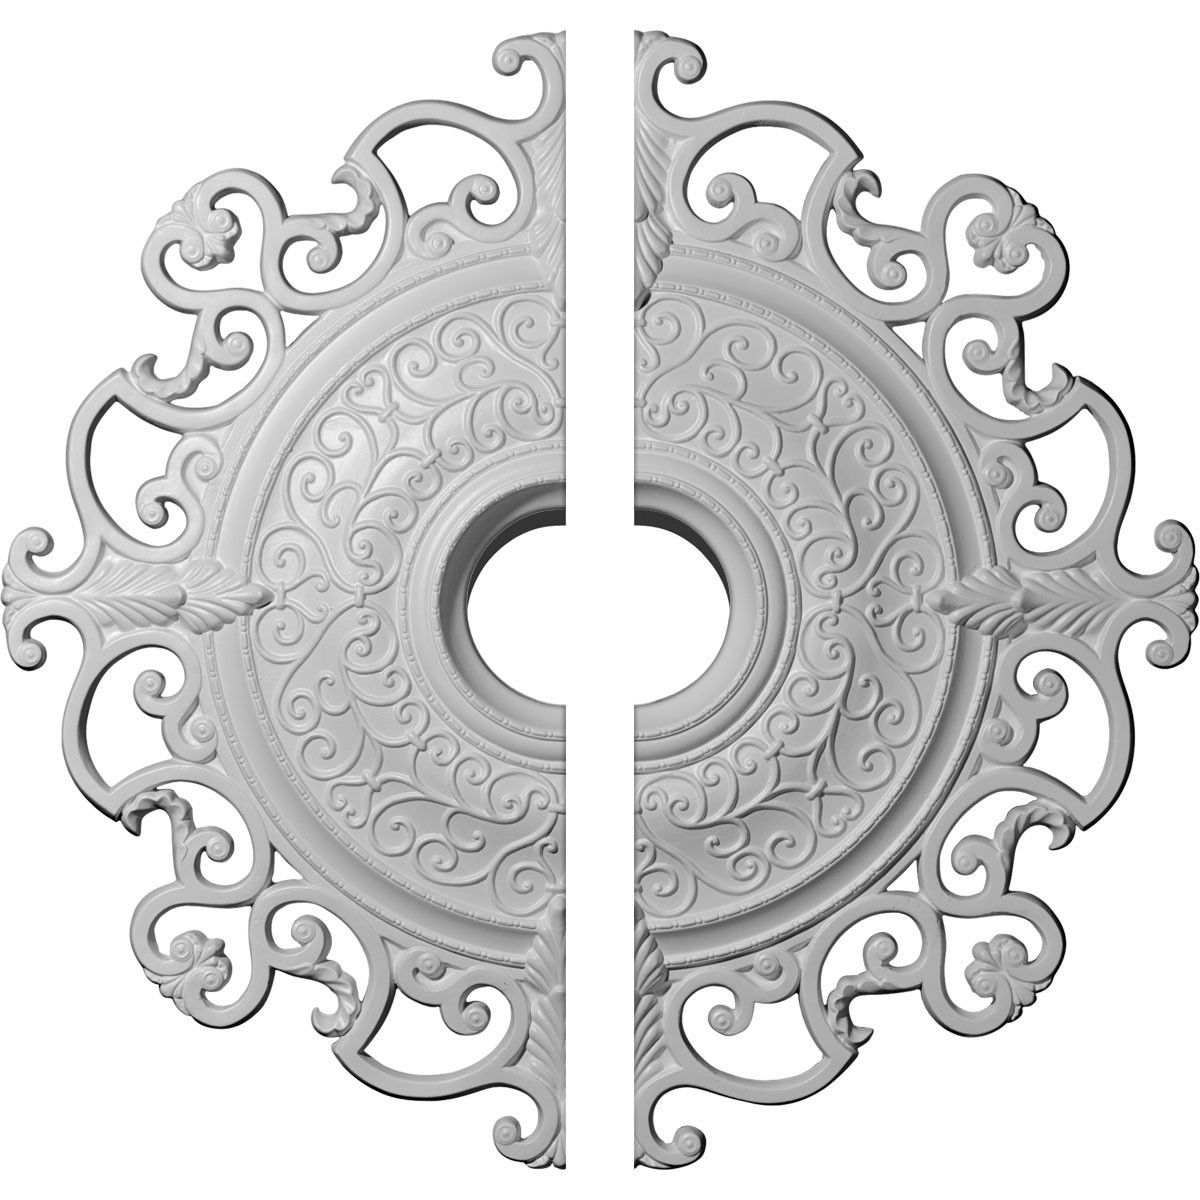 """EM-CM38OL2 - 38 3/8""""OD x 6 5/8""""ID x 2 7/8""""P Orleans Ceiling Medallion, Two Piece (Fits Canopies up to 8 1/4"""")"""